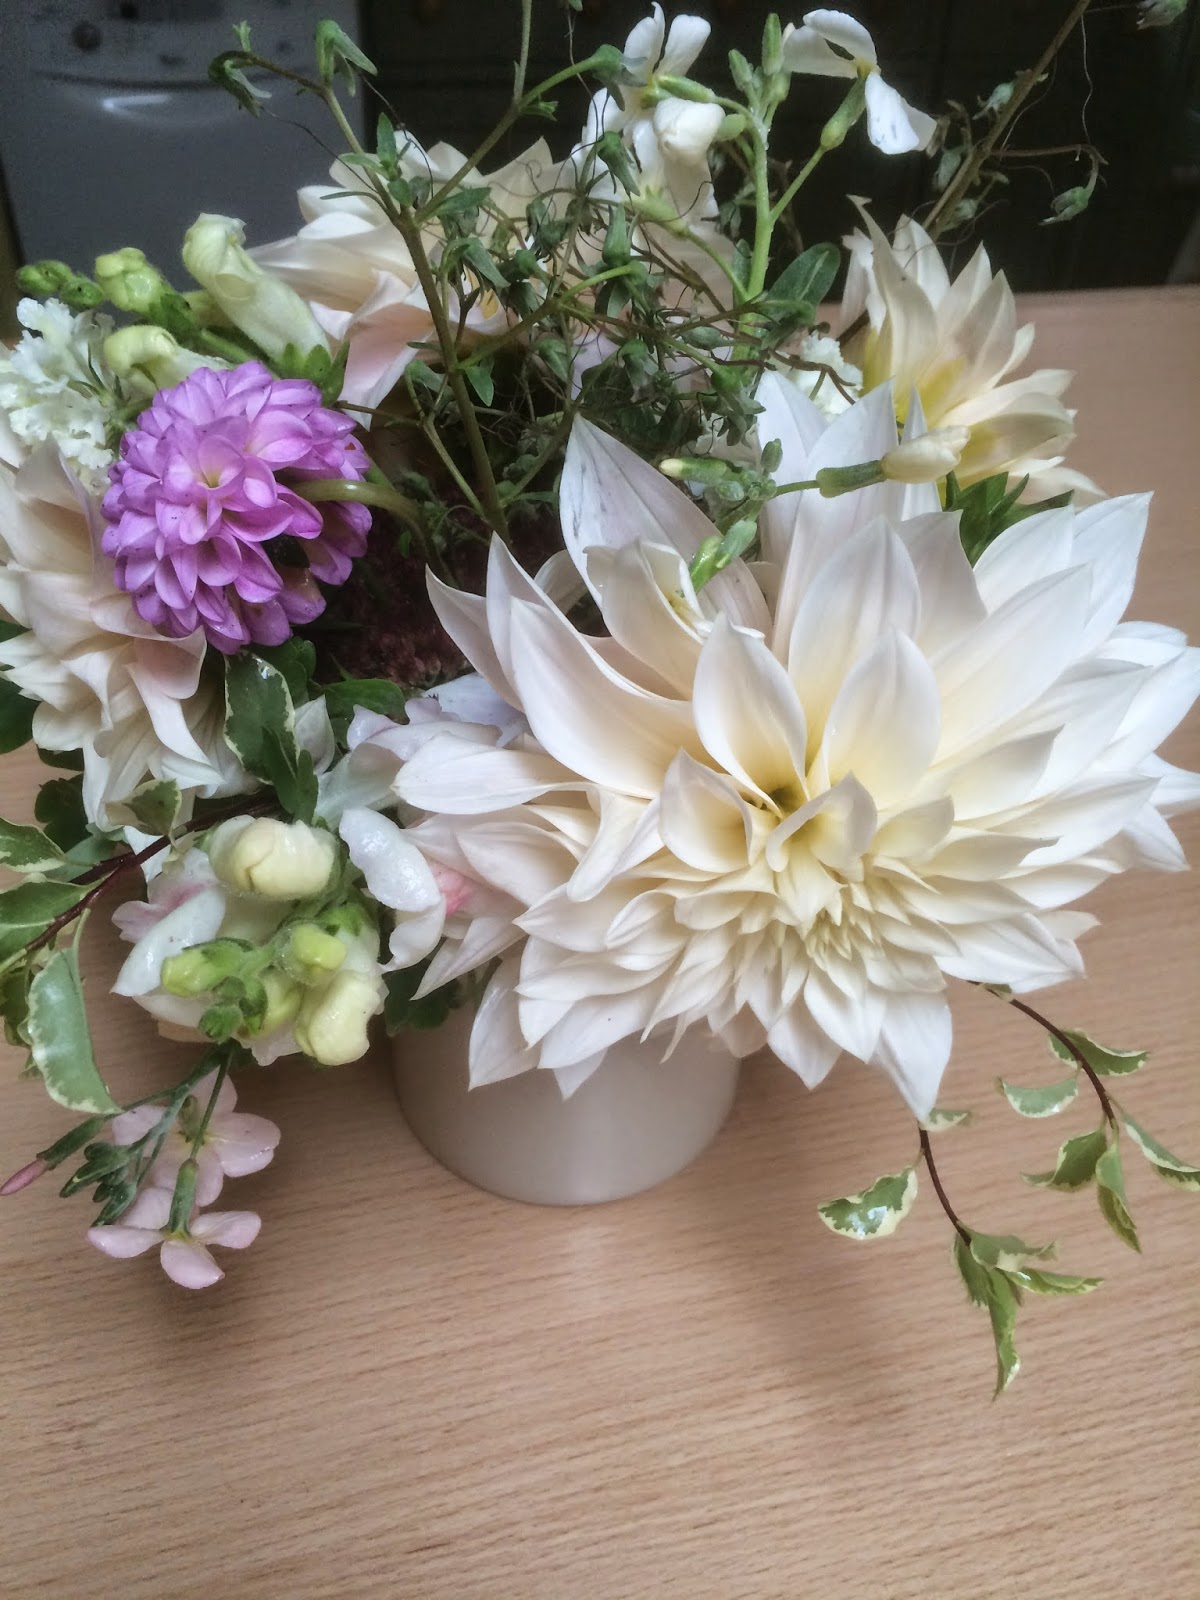 Cafe au lait dahlias in a relaxed bunch of British flowers